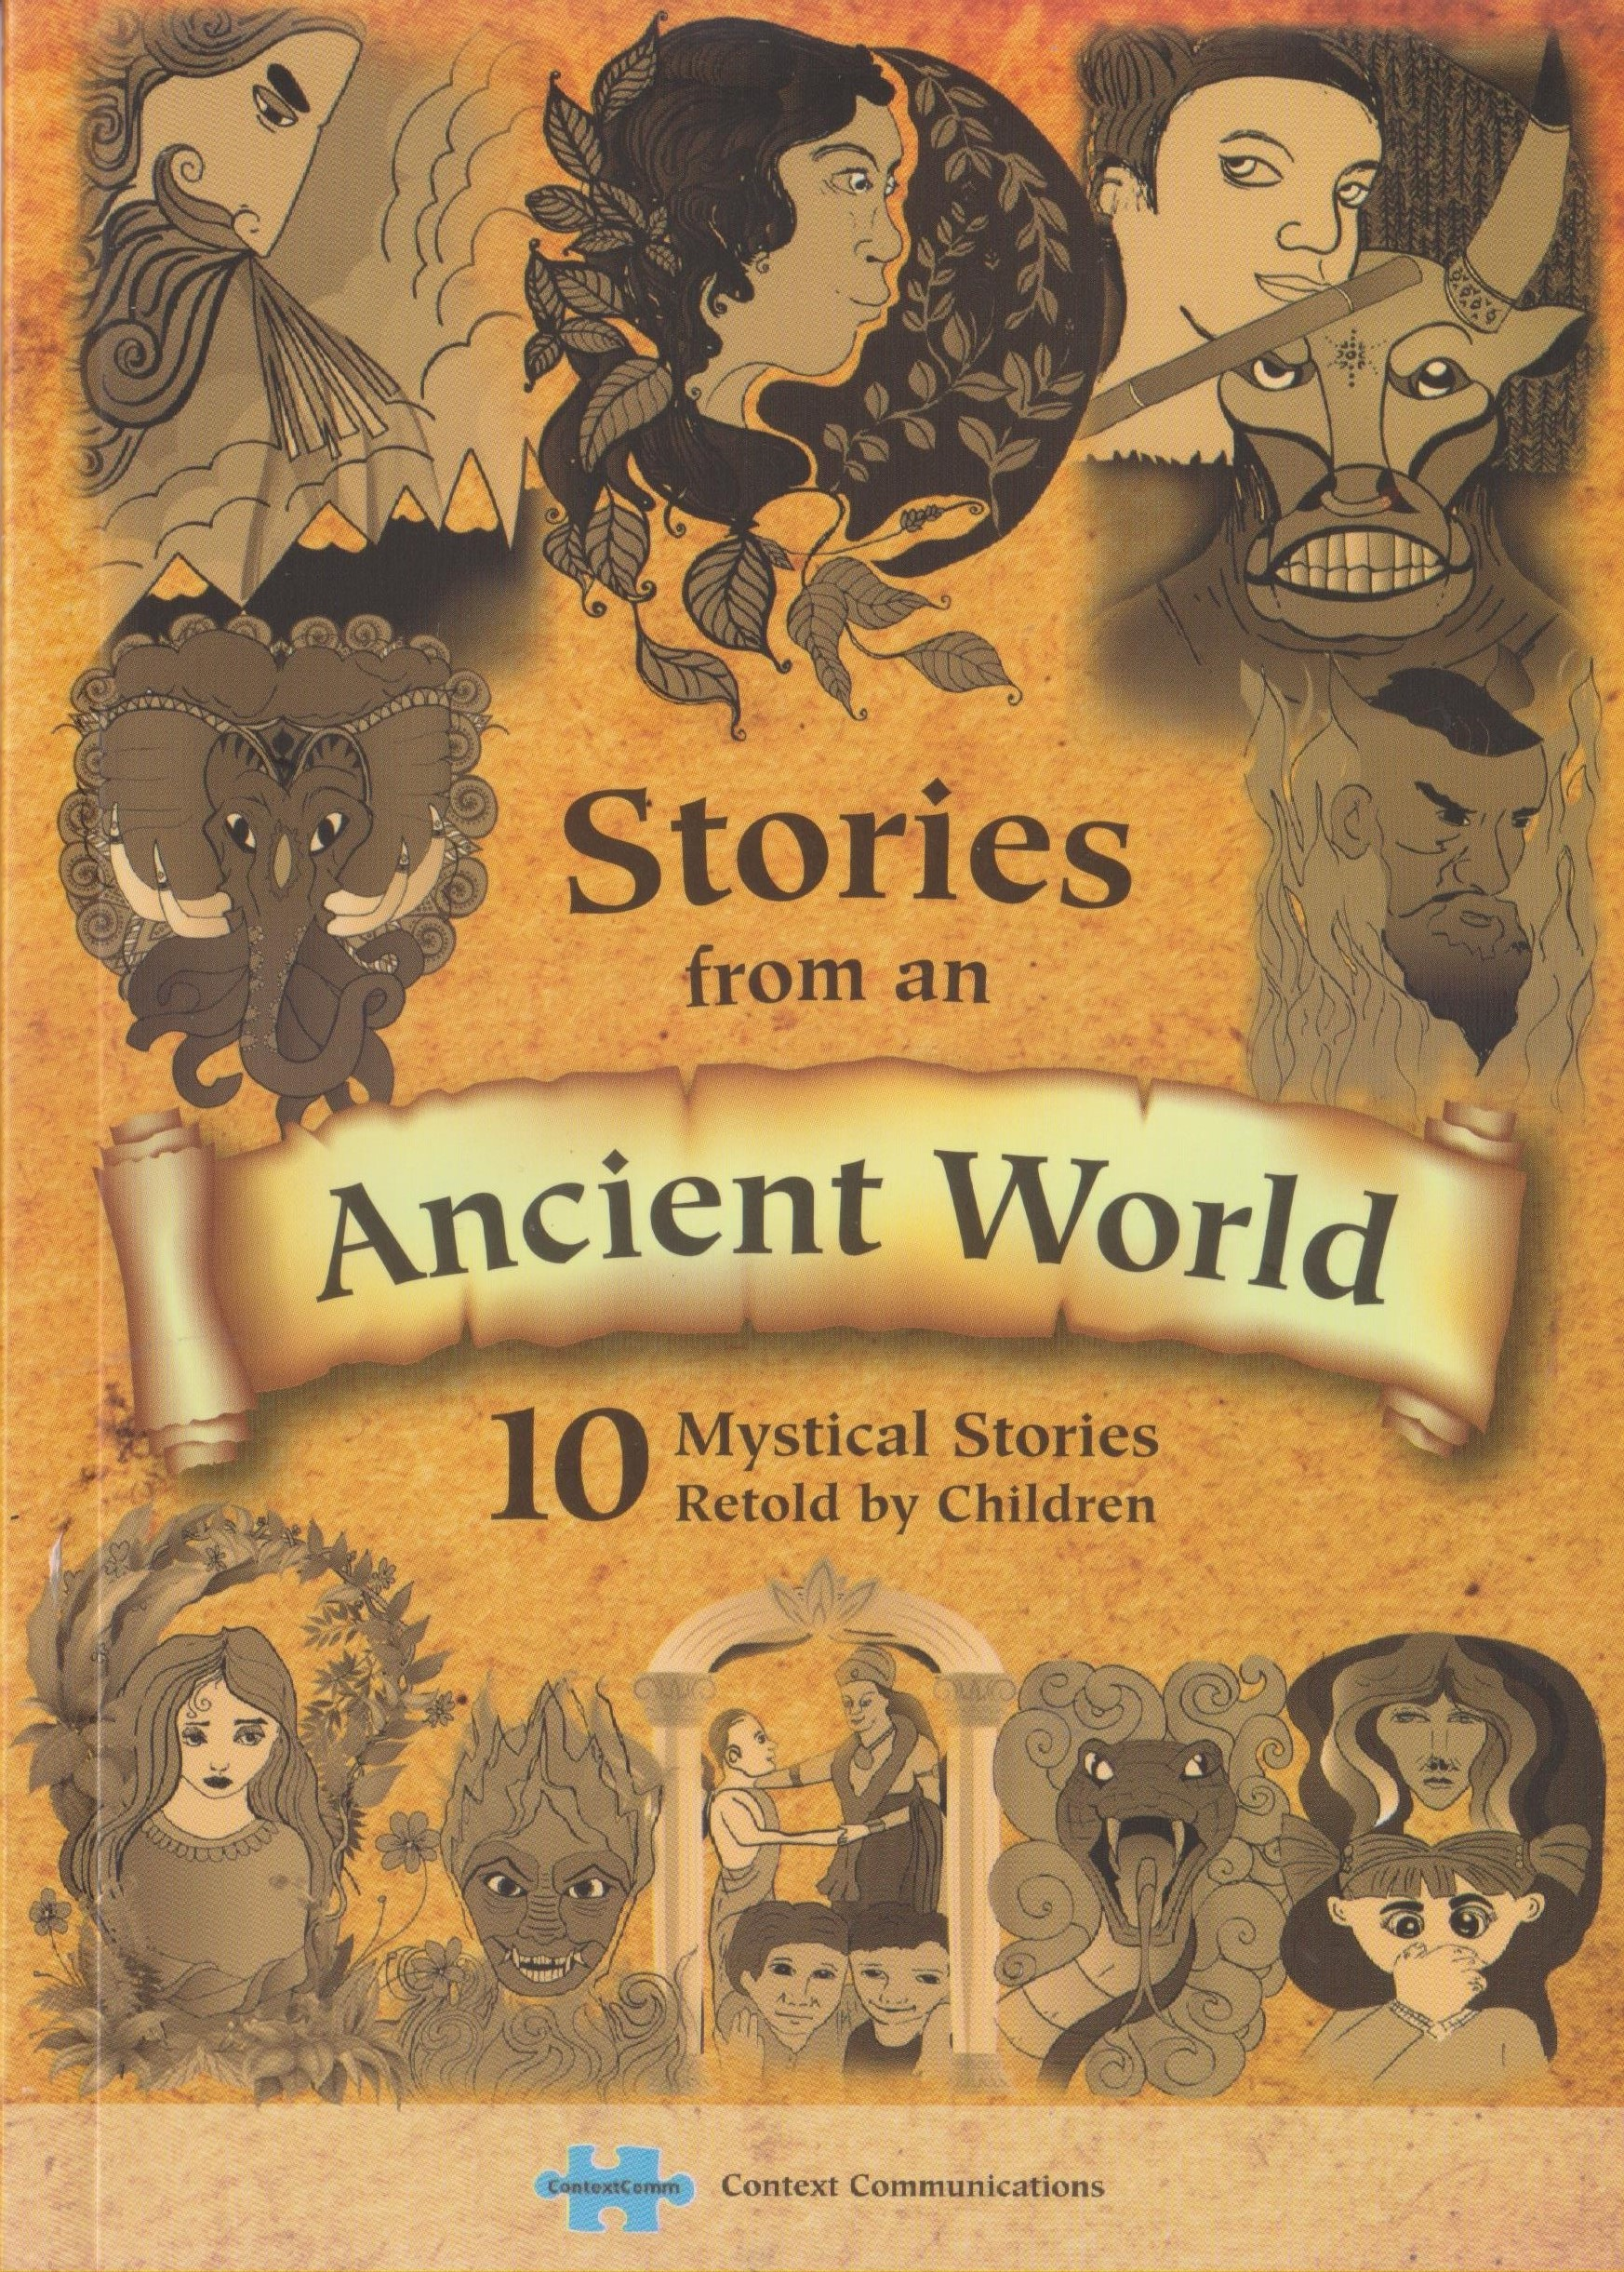 Stories from an Ancient World : 10 Mystical Stories Retold by Chlidren